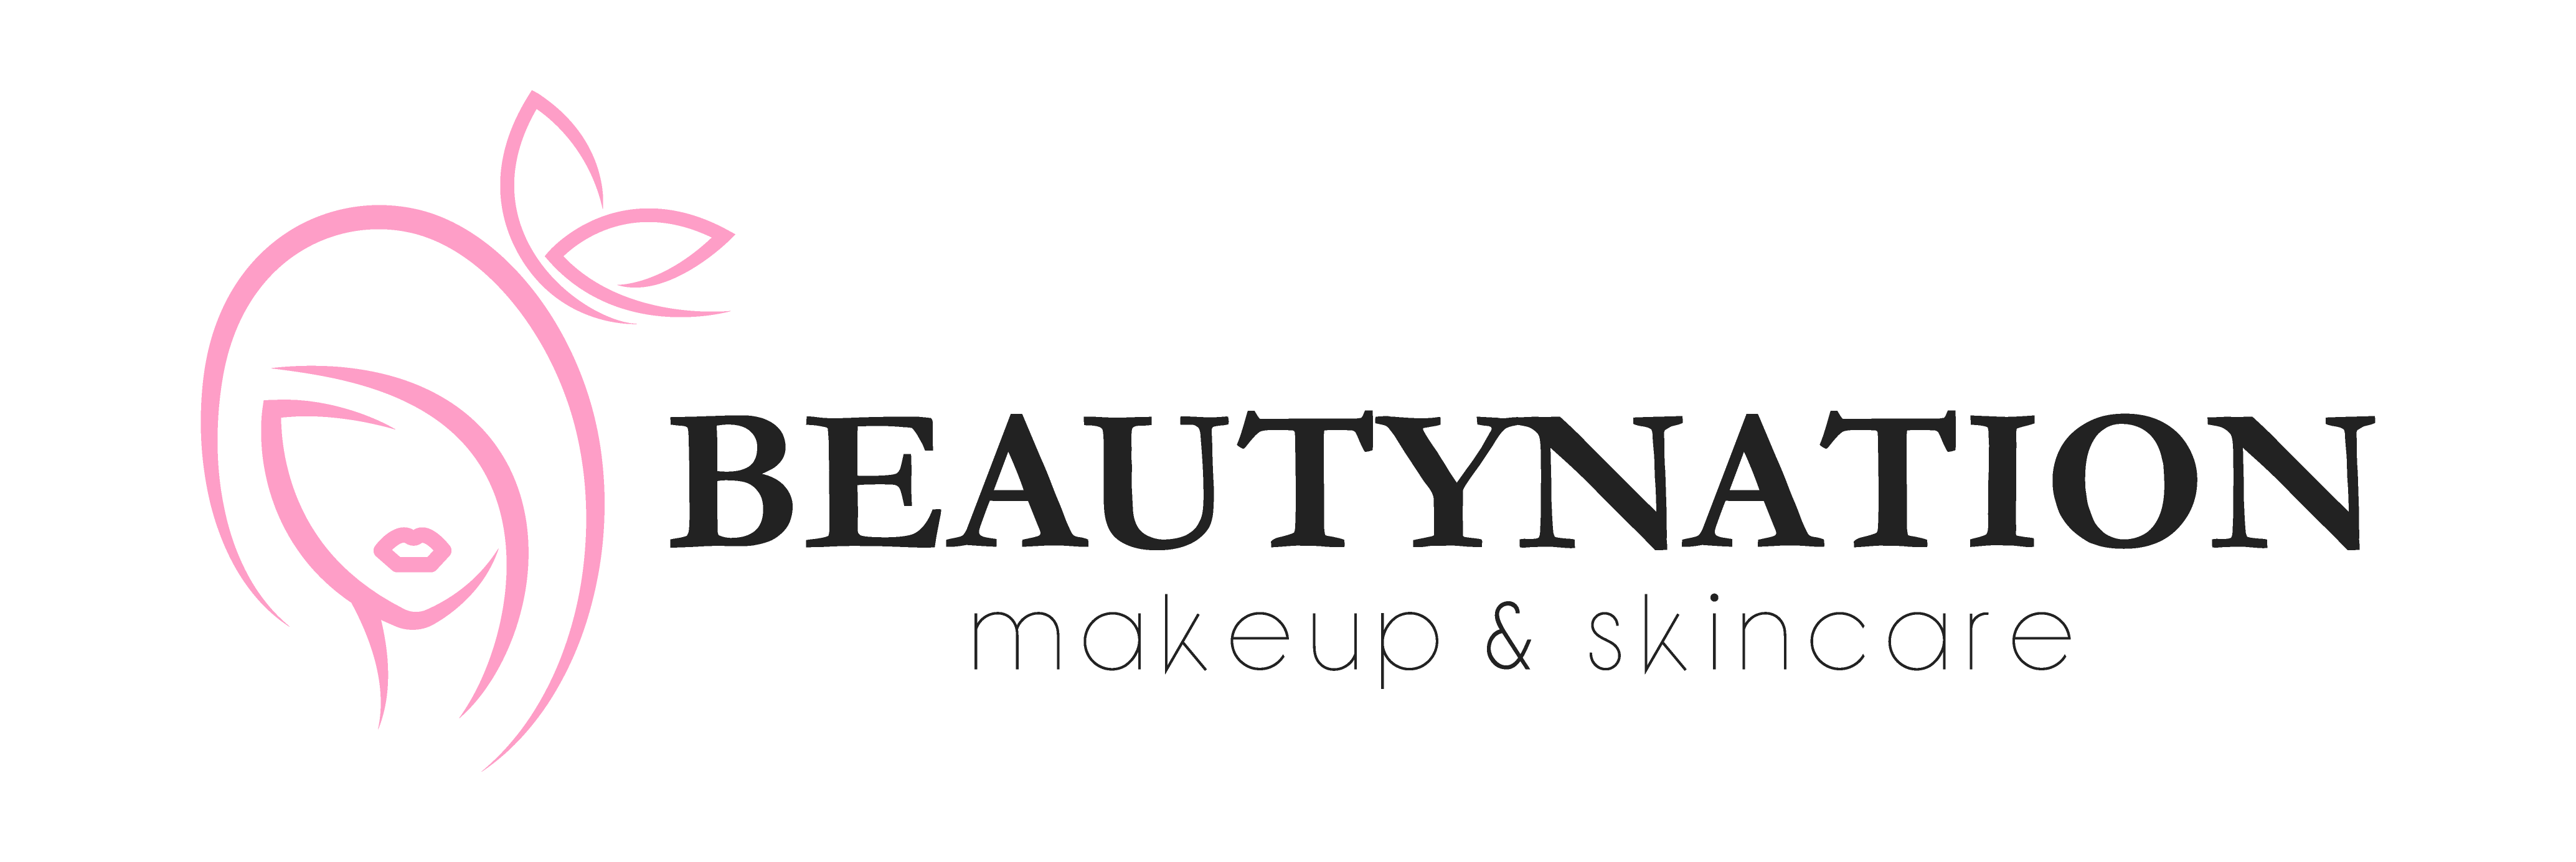 Beautynation